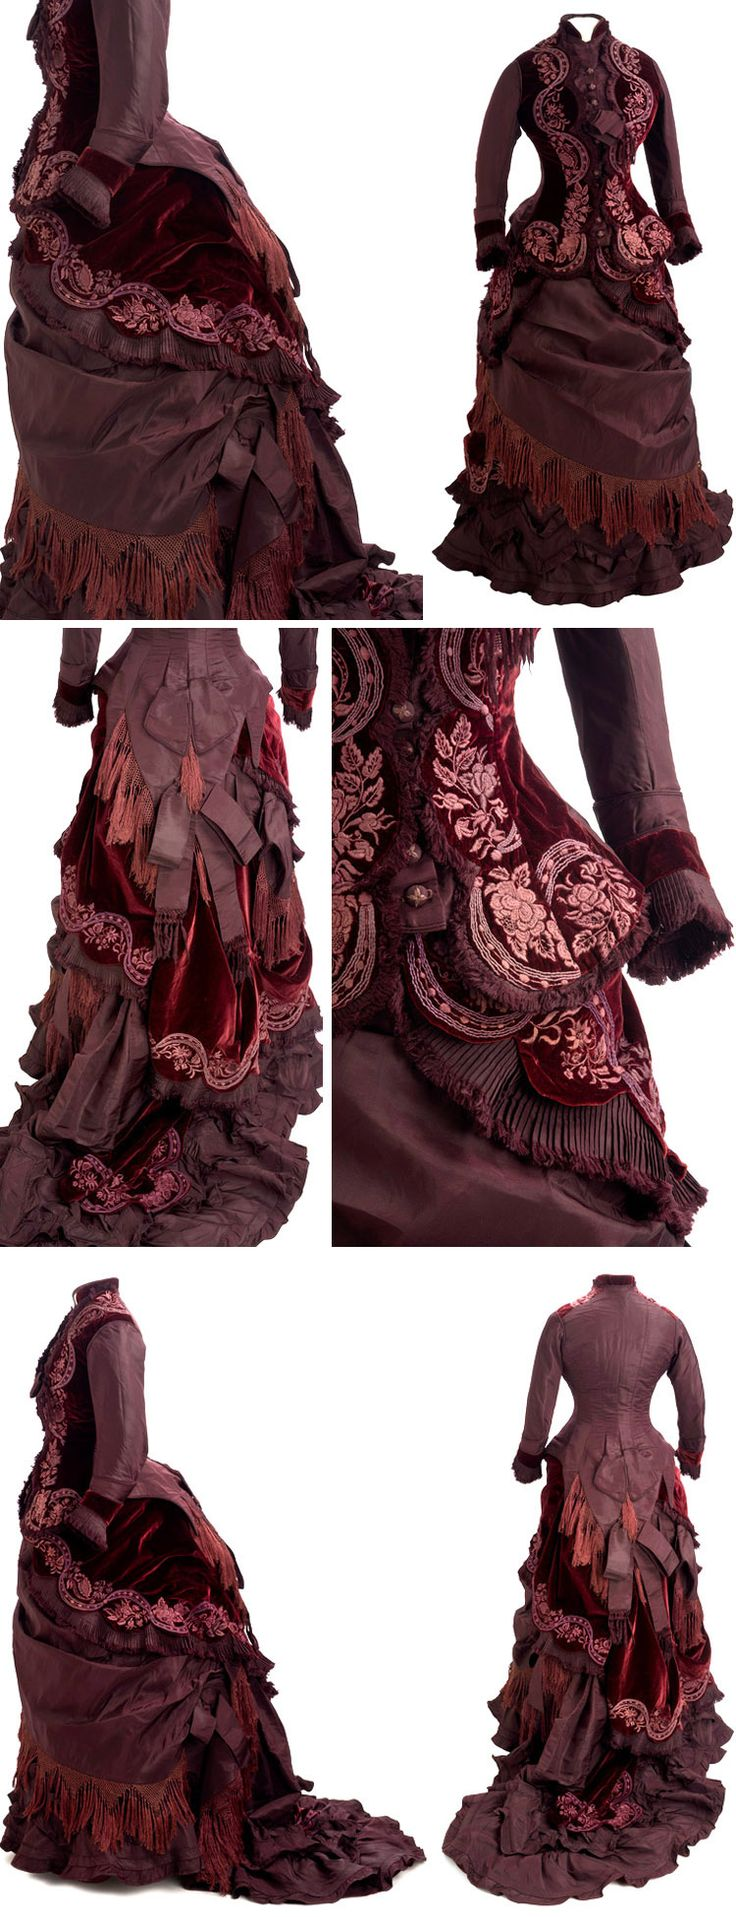 Reception gown, Jane E. Turner, New York, 1877. Two-piece dress of claret-colored velvet and taffeta with bustle and train. Self-covered buttons at center front with detail embroidery. Asymmetrically trimmed with draped swags, knotted cotton fringe and self-fabric bows. Hand- and machine-sewn. Miss Turner charged the client $128.33 for the dress, which she wore at a White House reception. Minnesota Historical Society